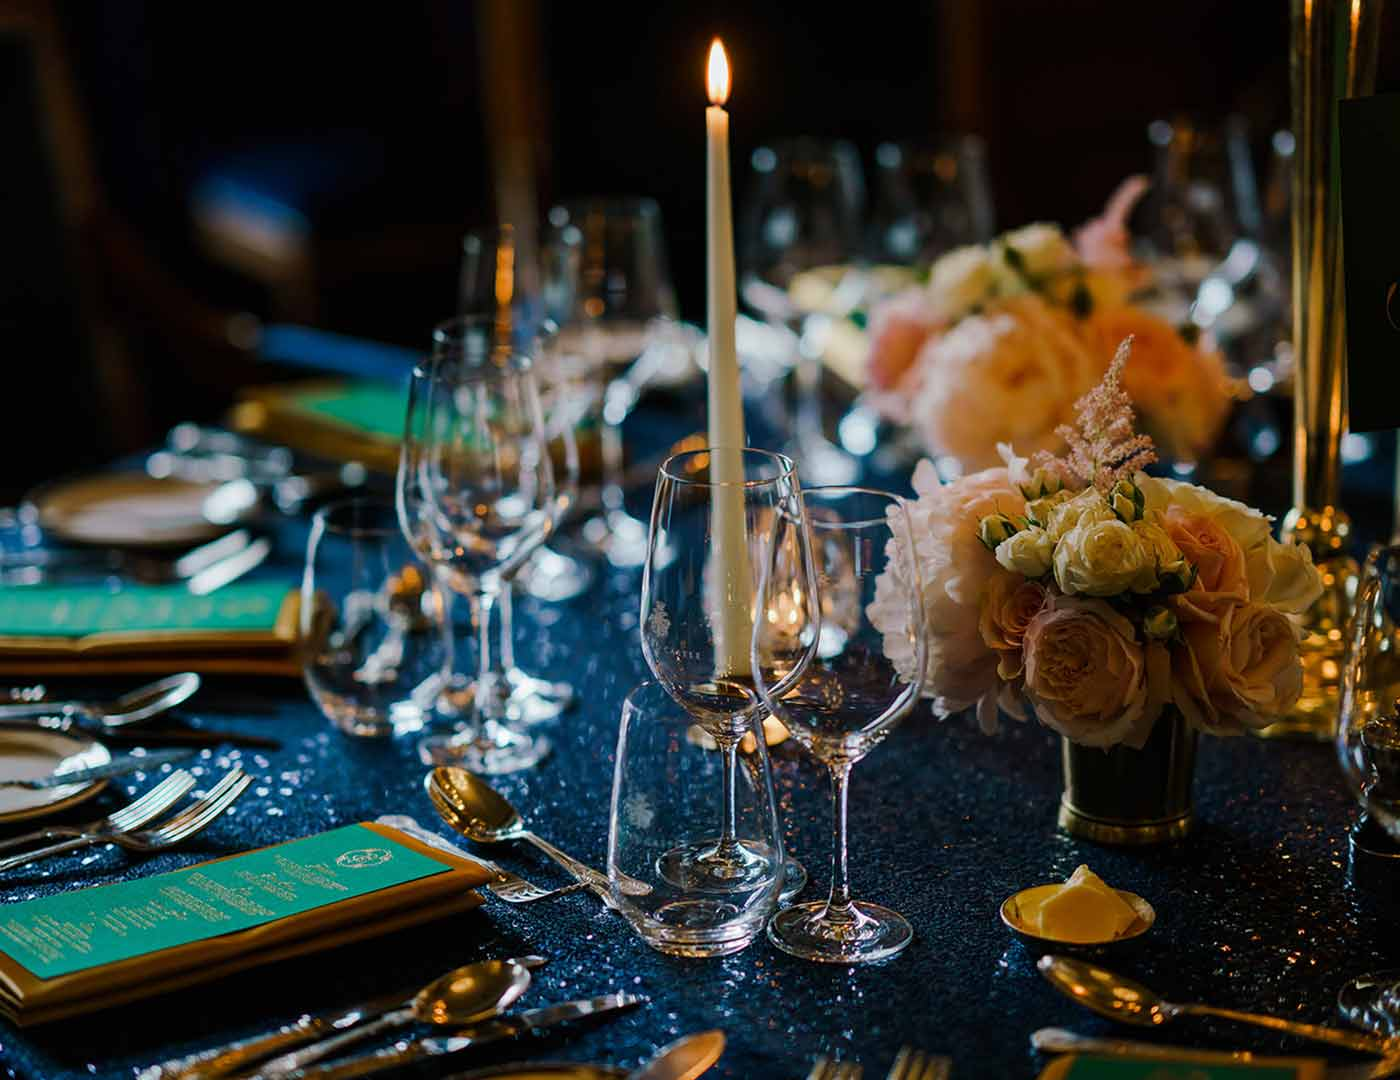 Ashford Castle, Wedding reception, Marquee ceremony, Event planner in Ireland, Wedding Planner in Ireland, Destination Weddings, Olivia Buckley International